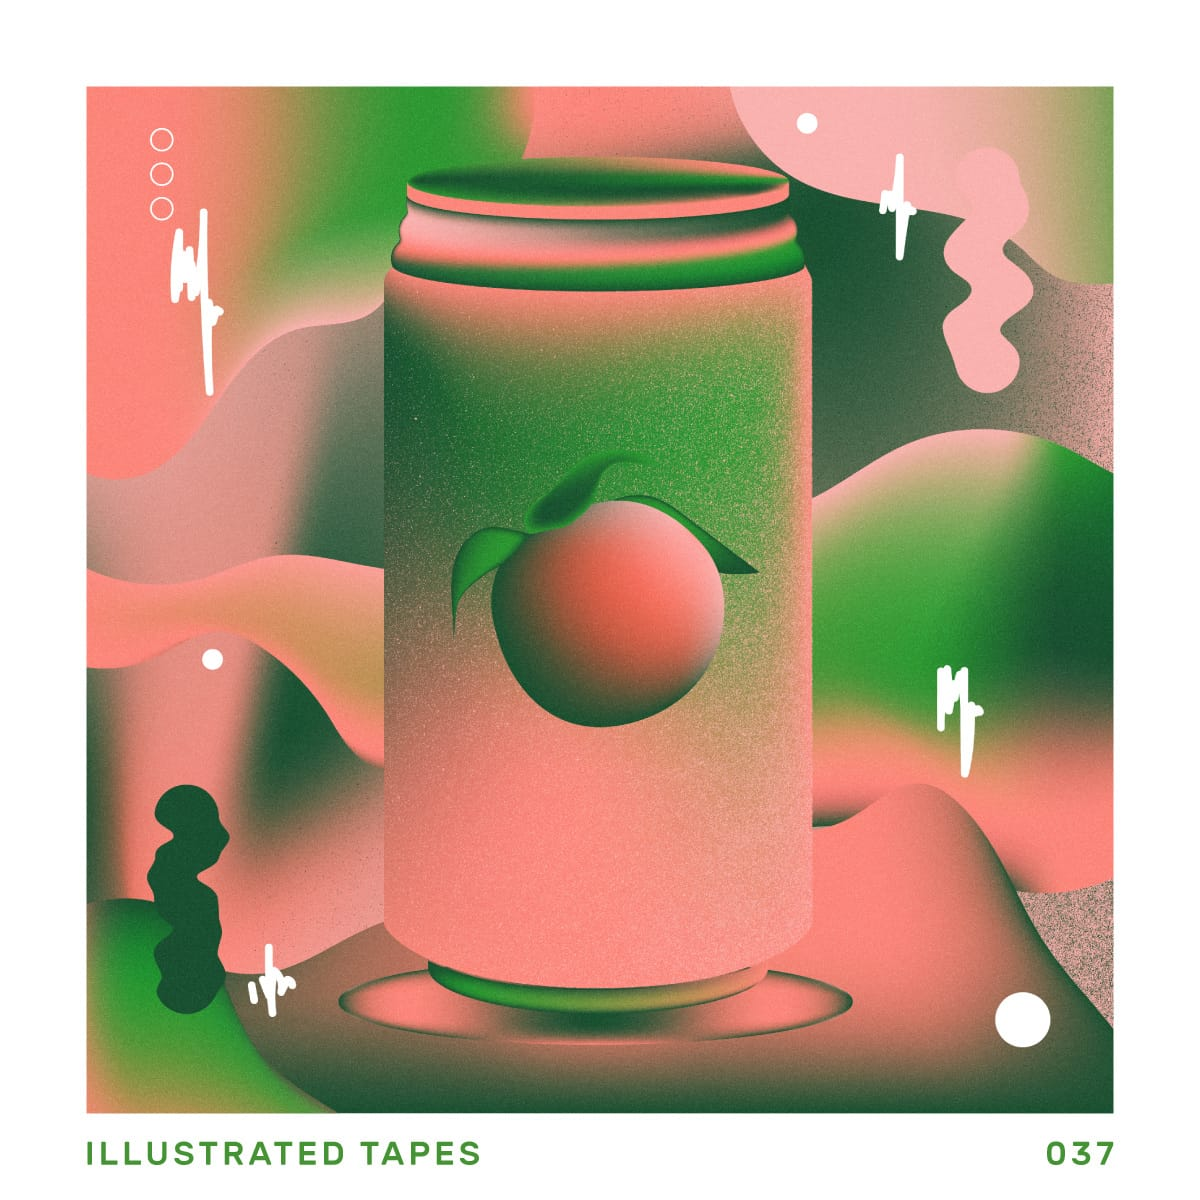 Illustrated Tapes #37